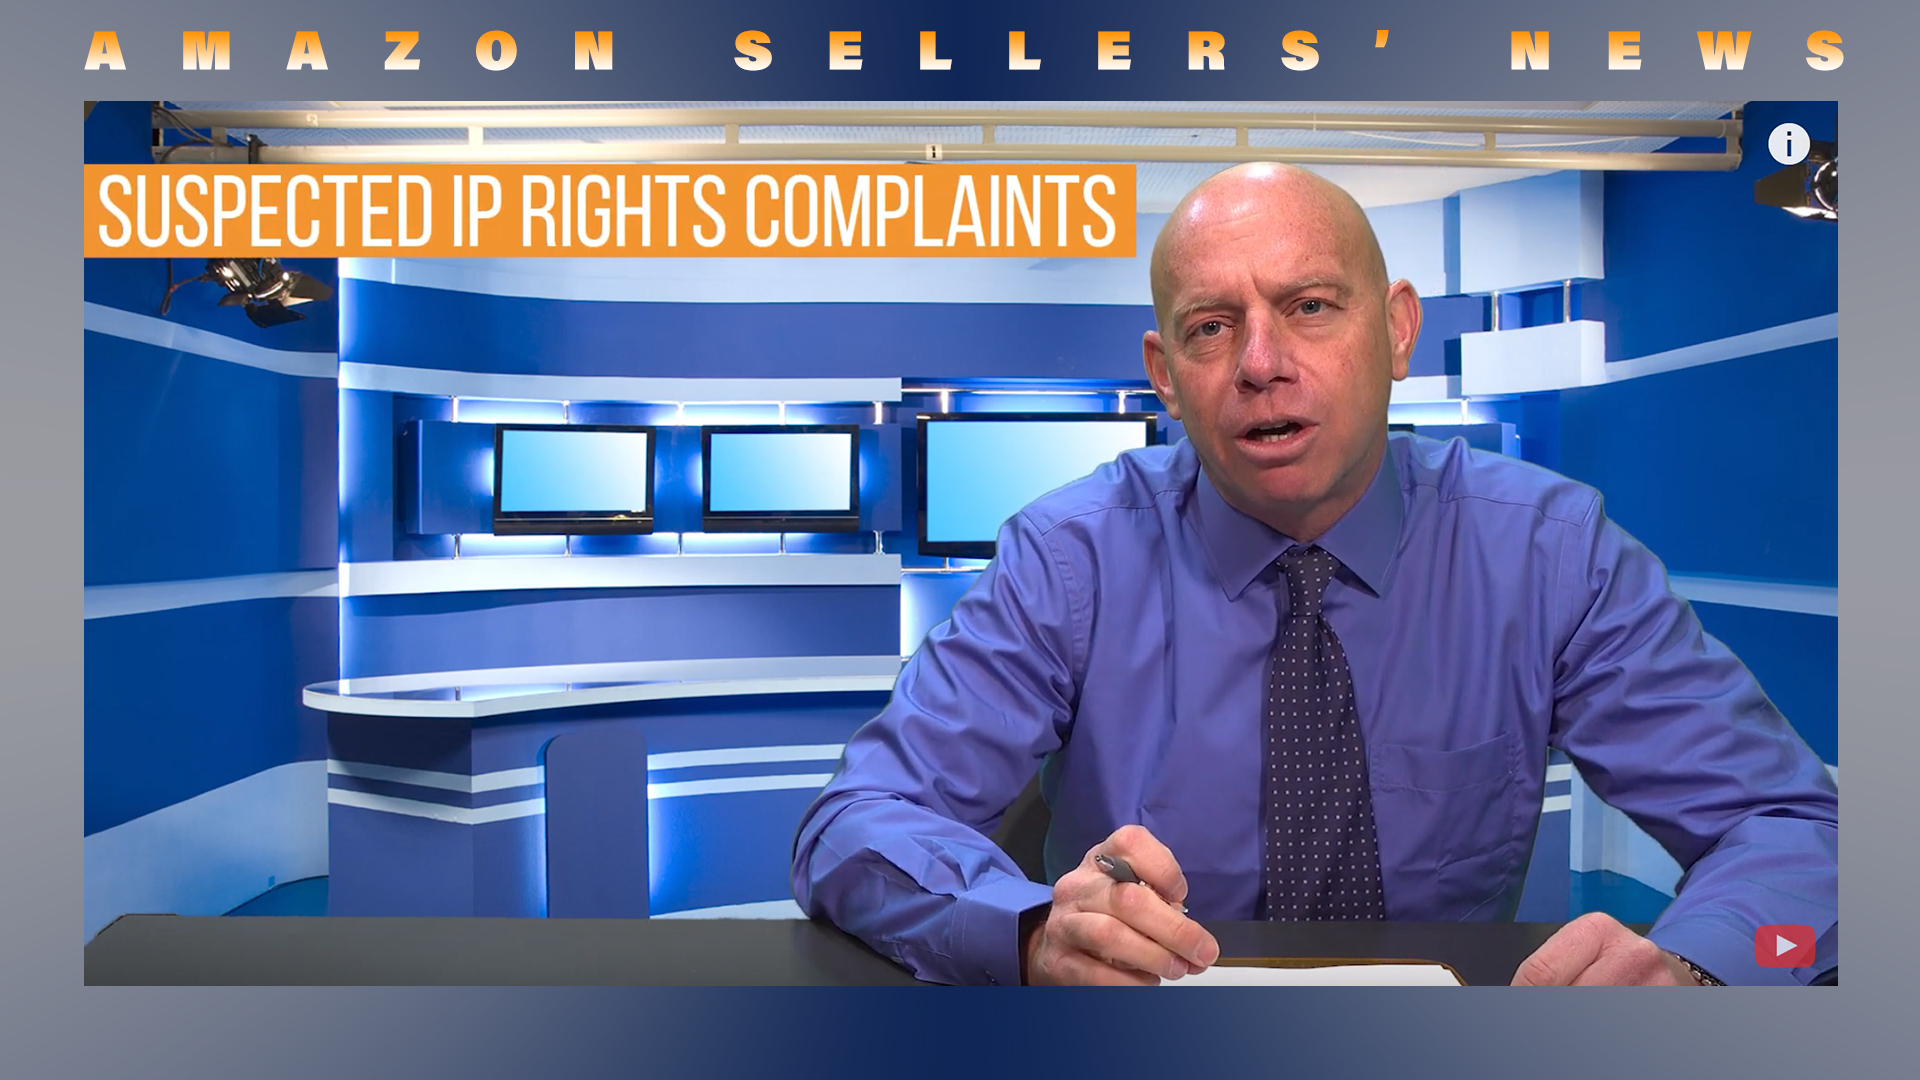 Amazon Sellers Receiving Business Verification, IP Complaints for Drop Shippers & Related Accounts